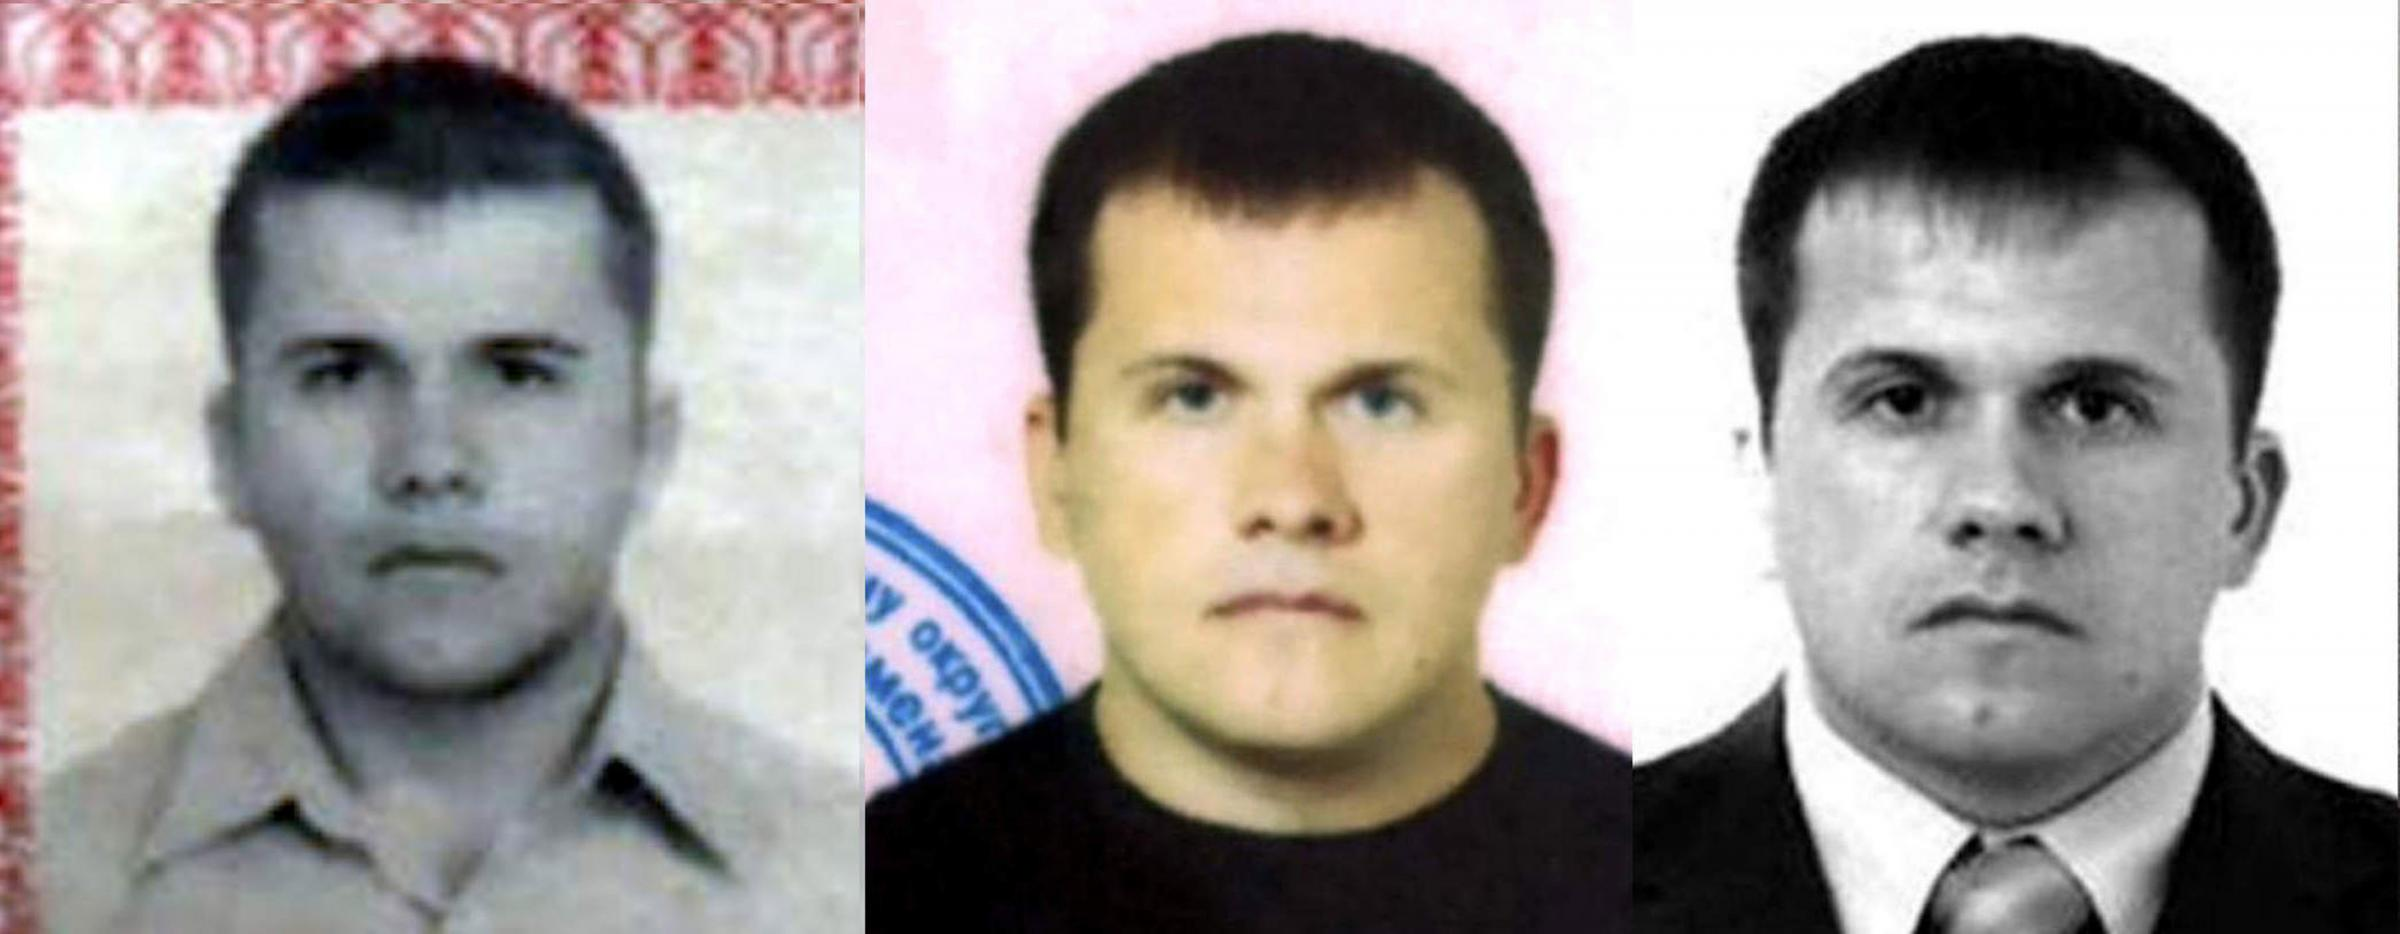 Undated handout images issued by Bellingcat of the second suspect in the Sergei and Yulia Skripal poisoning case that the investigative website have named as Dr Alexander Yevgenyevich Mishkin, The website reports Mishkin travelled to Salis